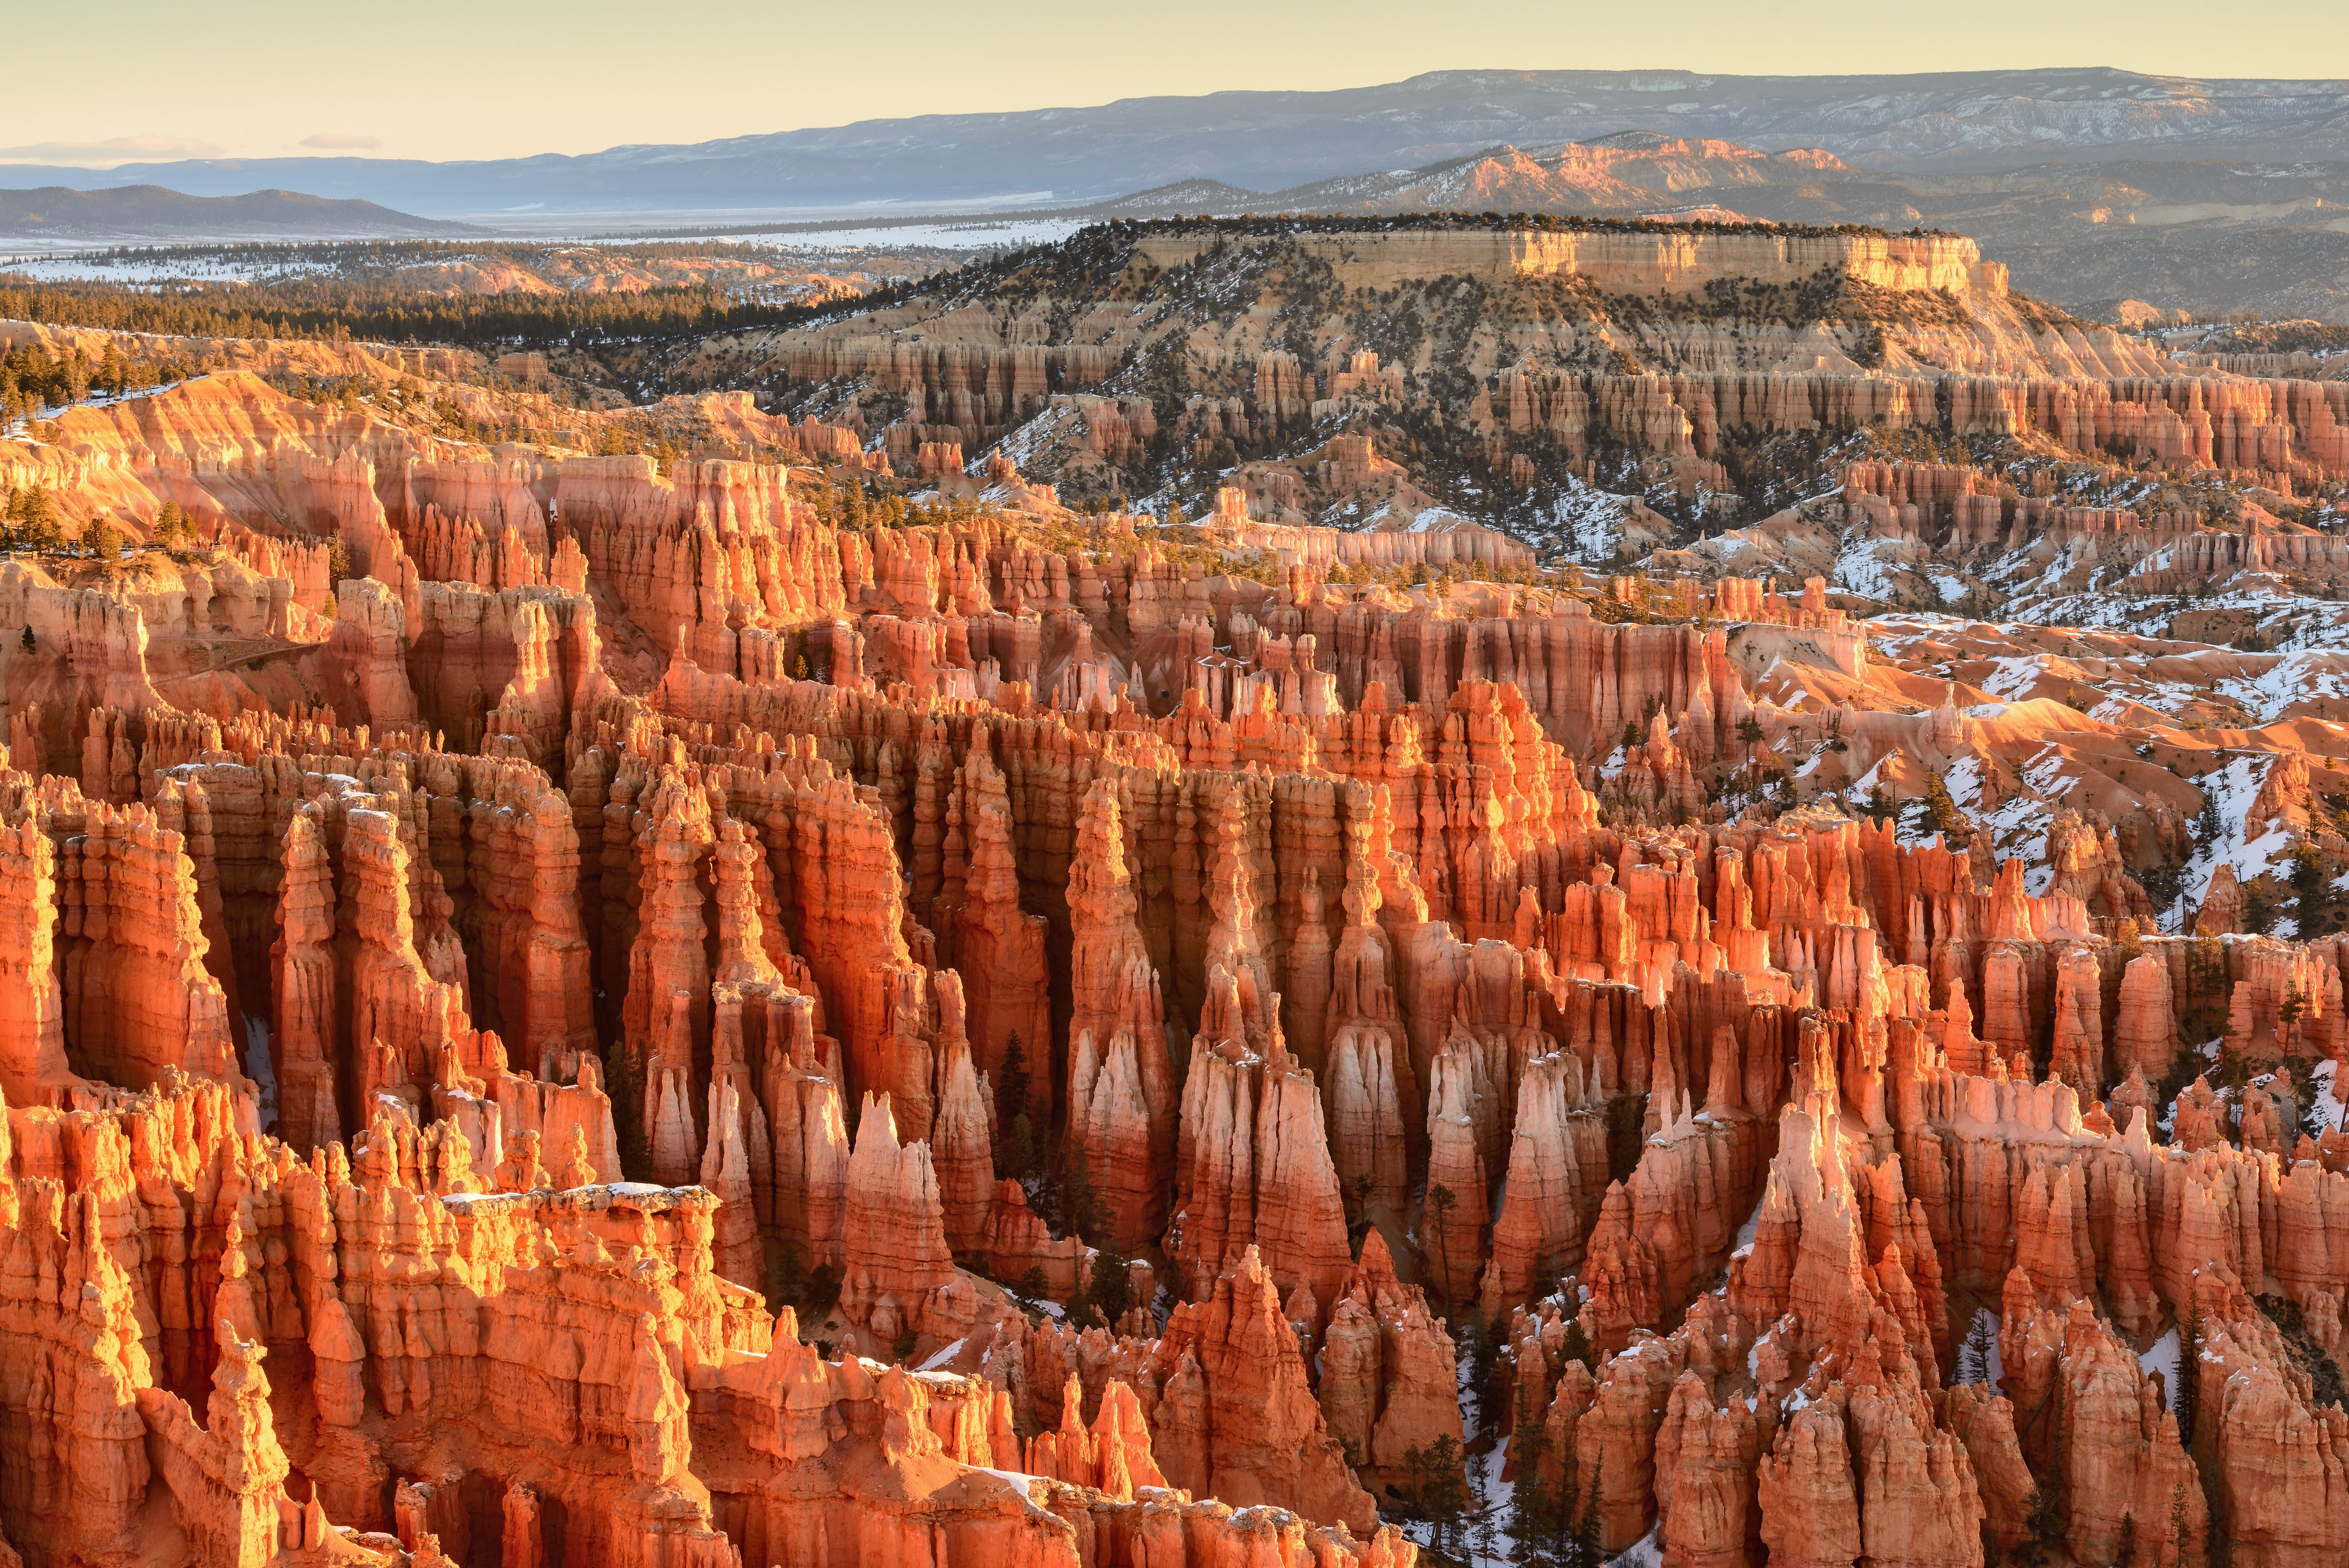 USA, Utah, Bryce Canyon National Park, Elevated view of canyon rock formations in morning light